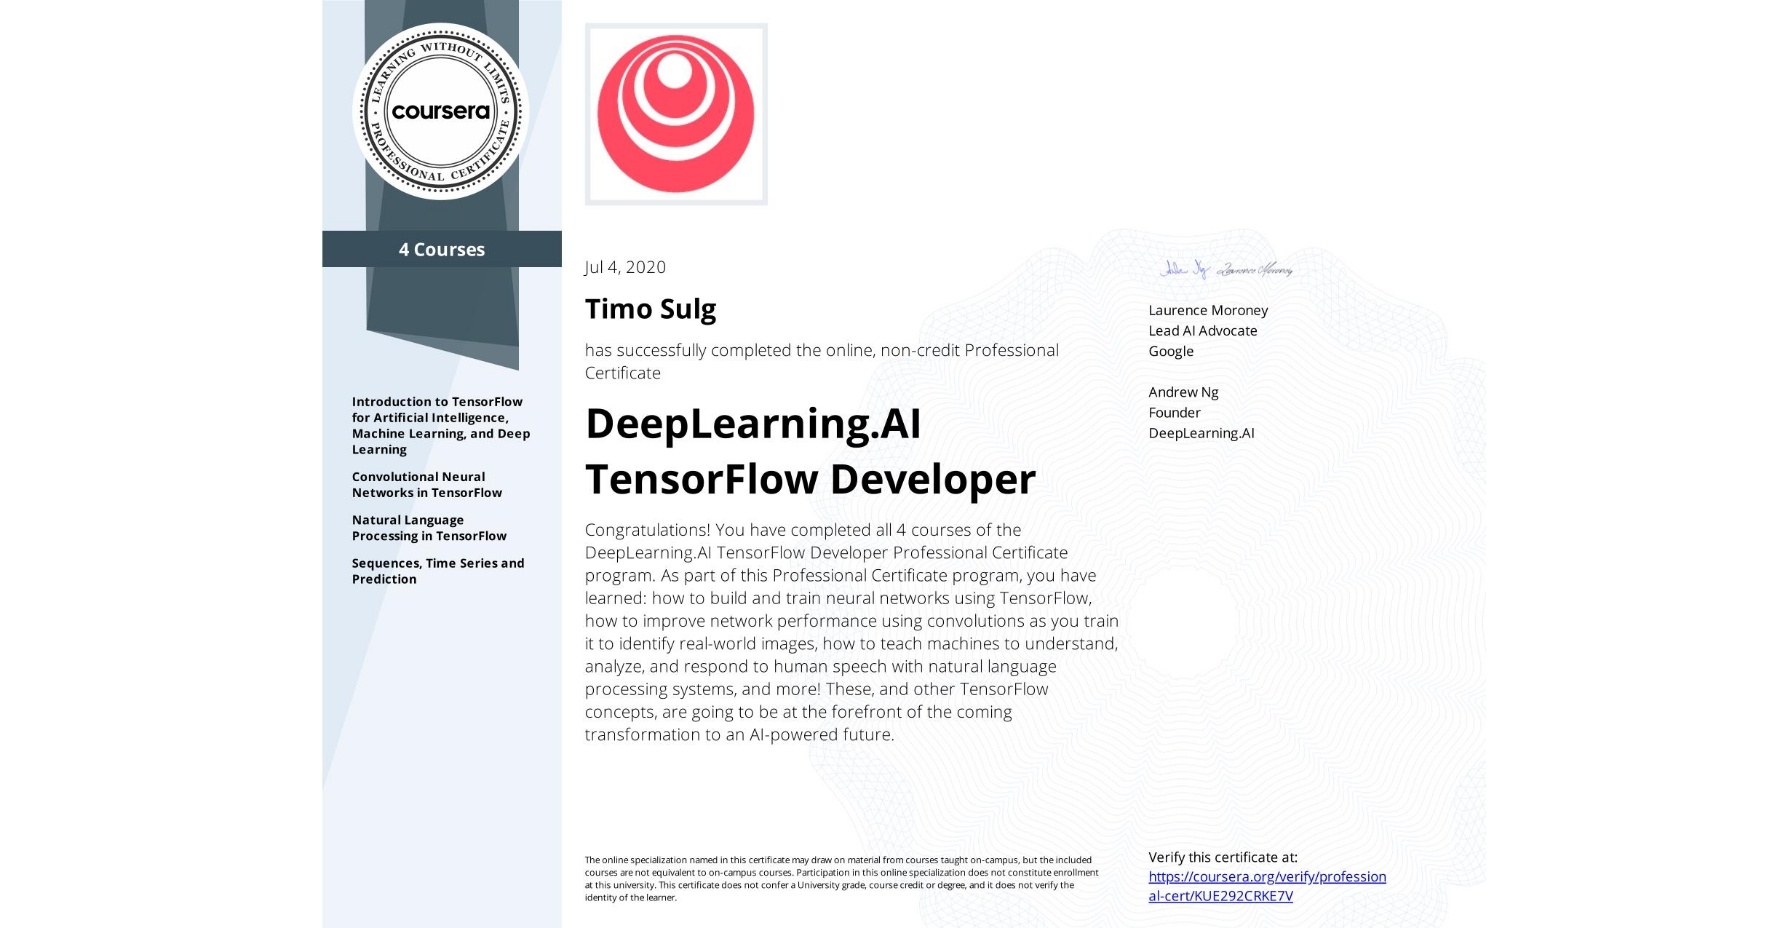 View certificate for Timo Sulg, DeepLearning.AI TensorFlow Developer, offered through Coursera. Congratulations! You have completed all 4 courses of the DeepLearning.AI TensorFlow Developer Professional Certificate program.   As part of this Professional Certificate program, you have learned: how to build and train neural networks using TensorFlow, how to improve network performance using convolutions as you train it to identify real-world images, how to teach machines to understand, analyze, and respond to human speech with natural language processing systems, and more!  These, and other TensorFlow concepts, are going to be at the forefront of the coming transformation to an AI-powered future.